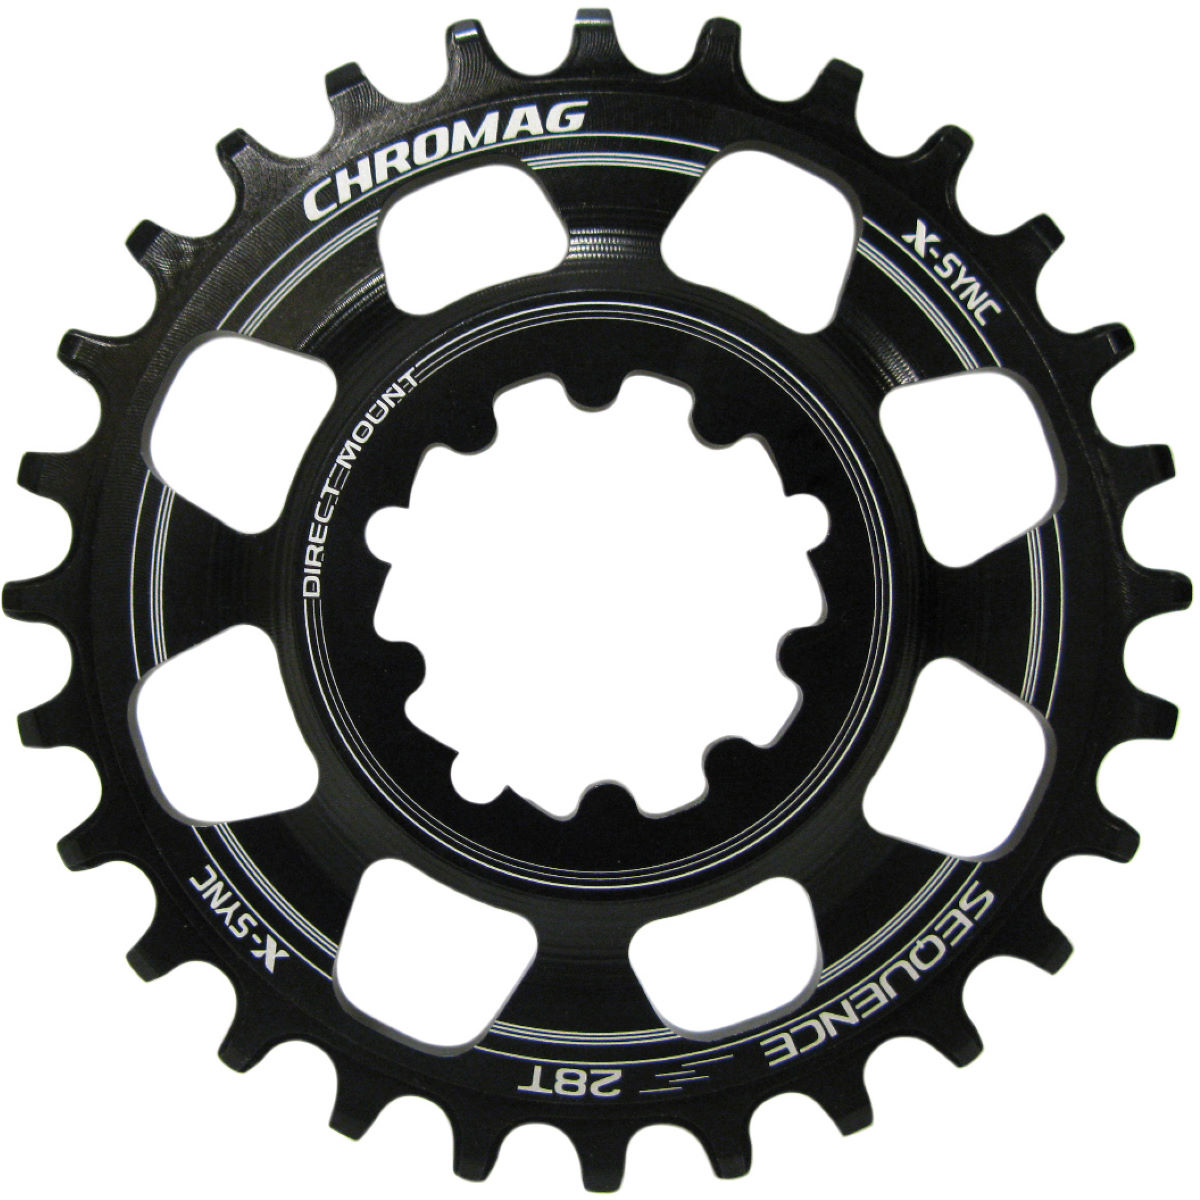 Chromag Sequence GXP Direct Mount Chainring - Platos